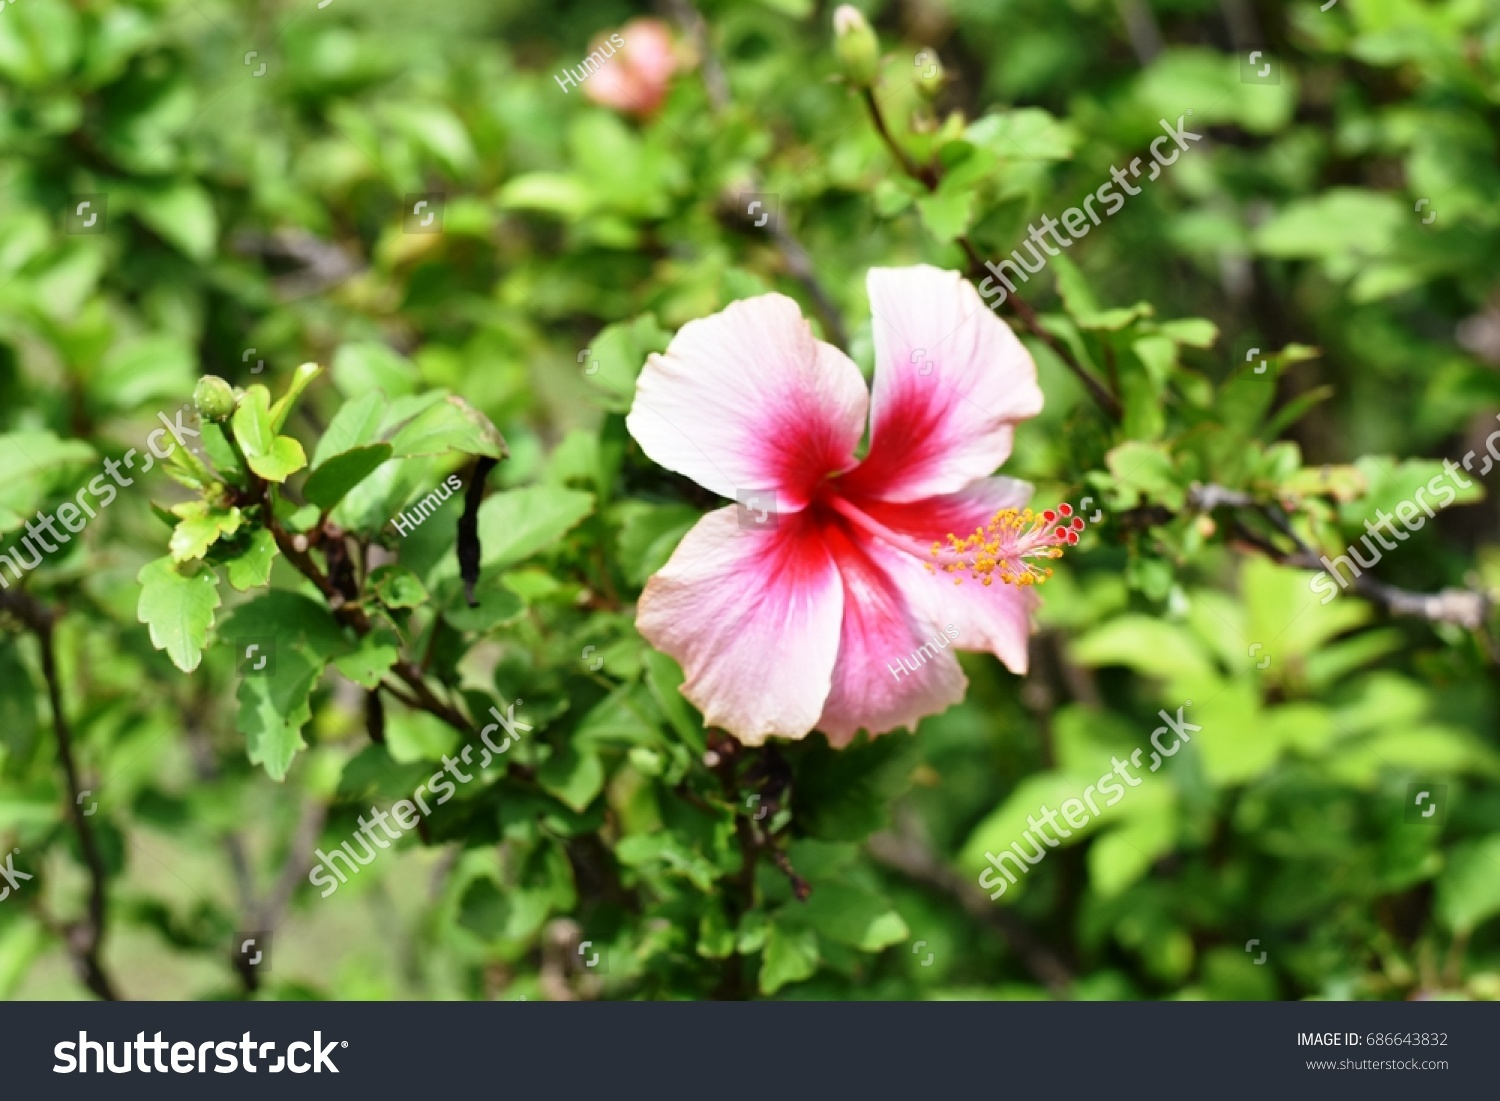 Various color chinese rose chinese hibiscus stock photo 686643832 various color of chinese rose or chinese hibiscus scientific name hibiscus rosa sinensis izmirmasajfo Image collections